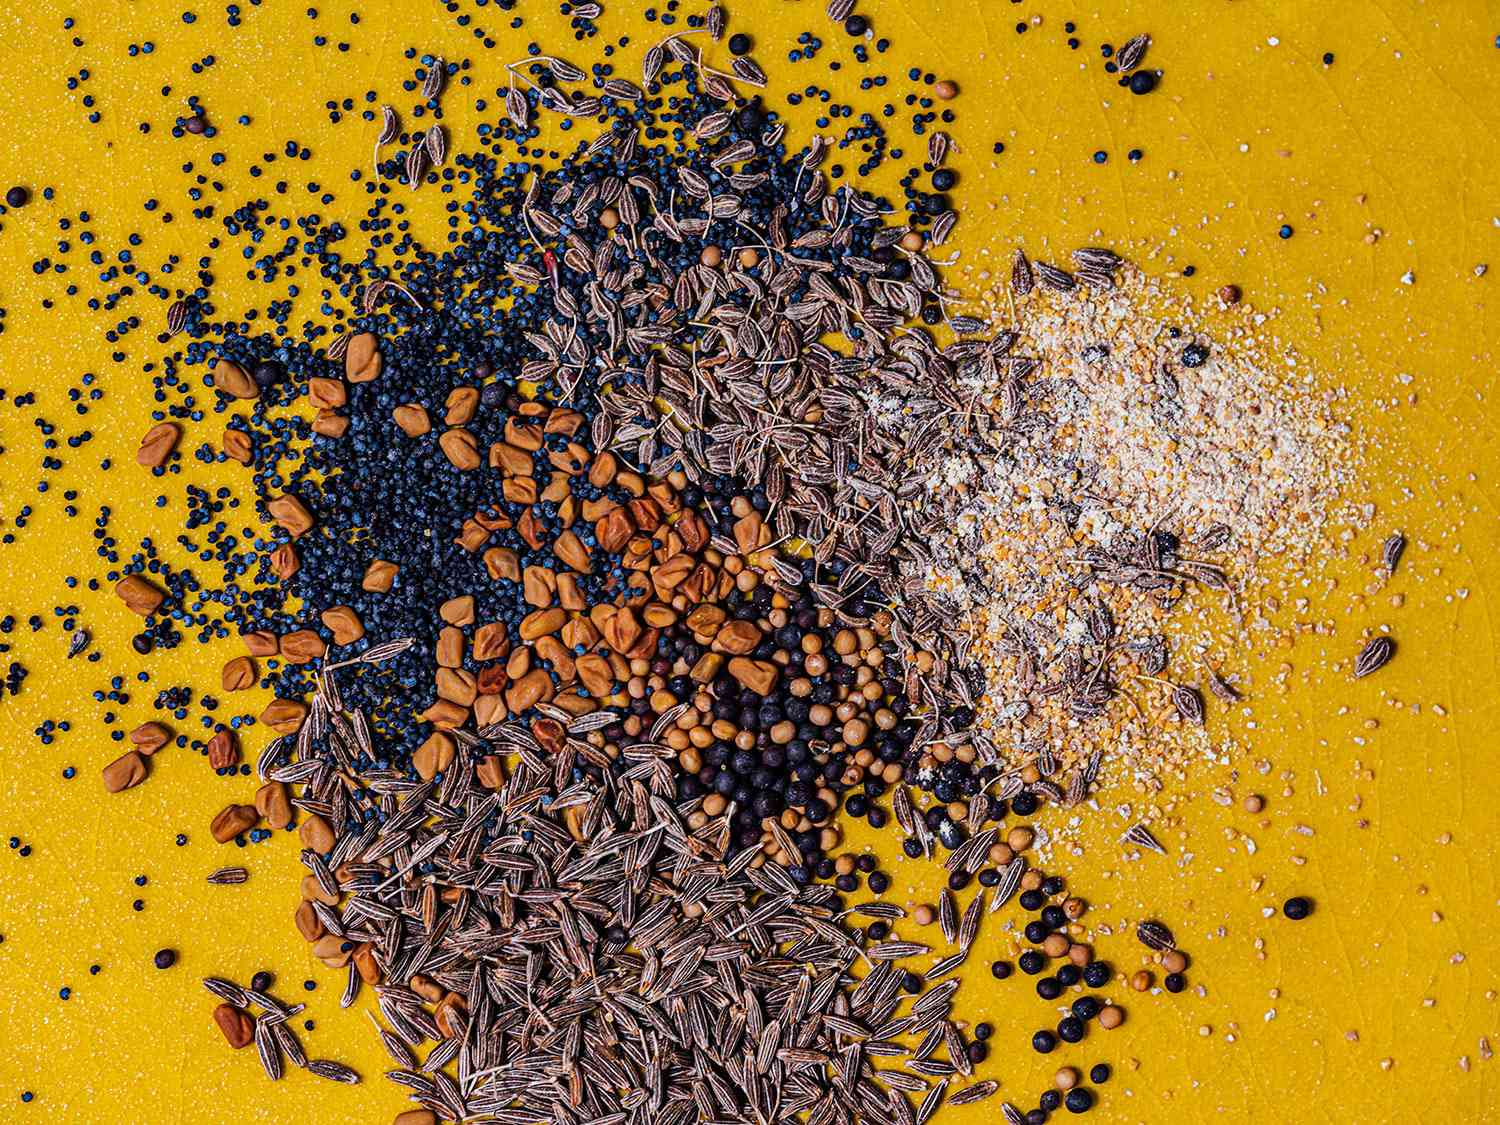 A variety of spices on a bright yellow background